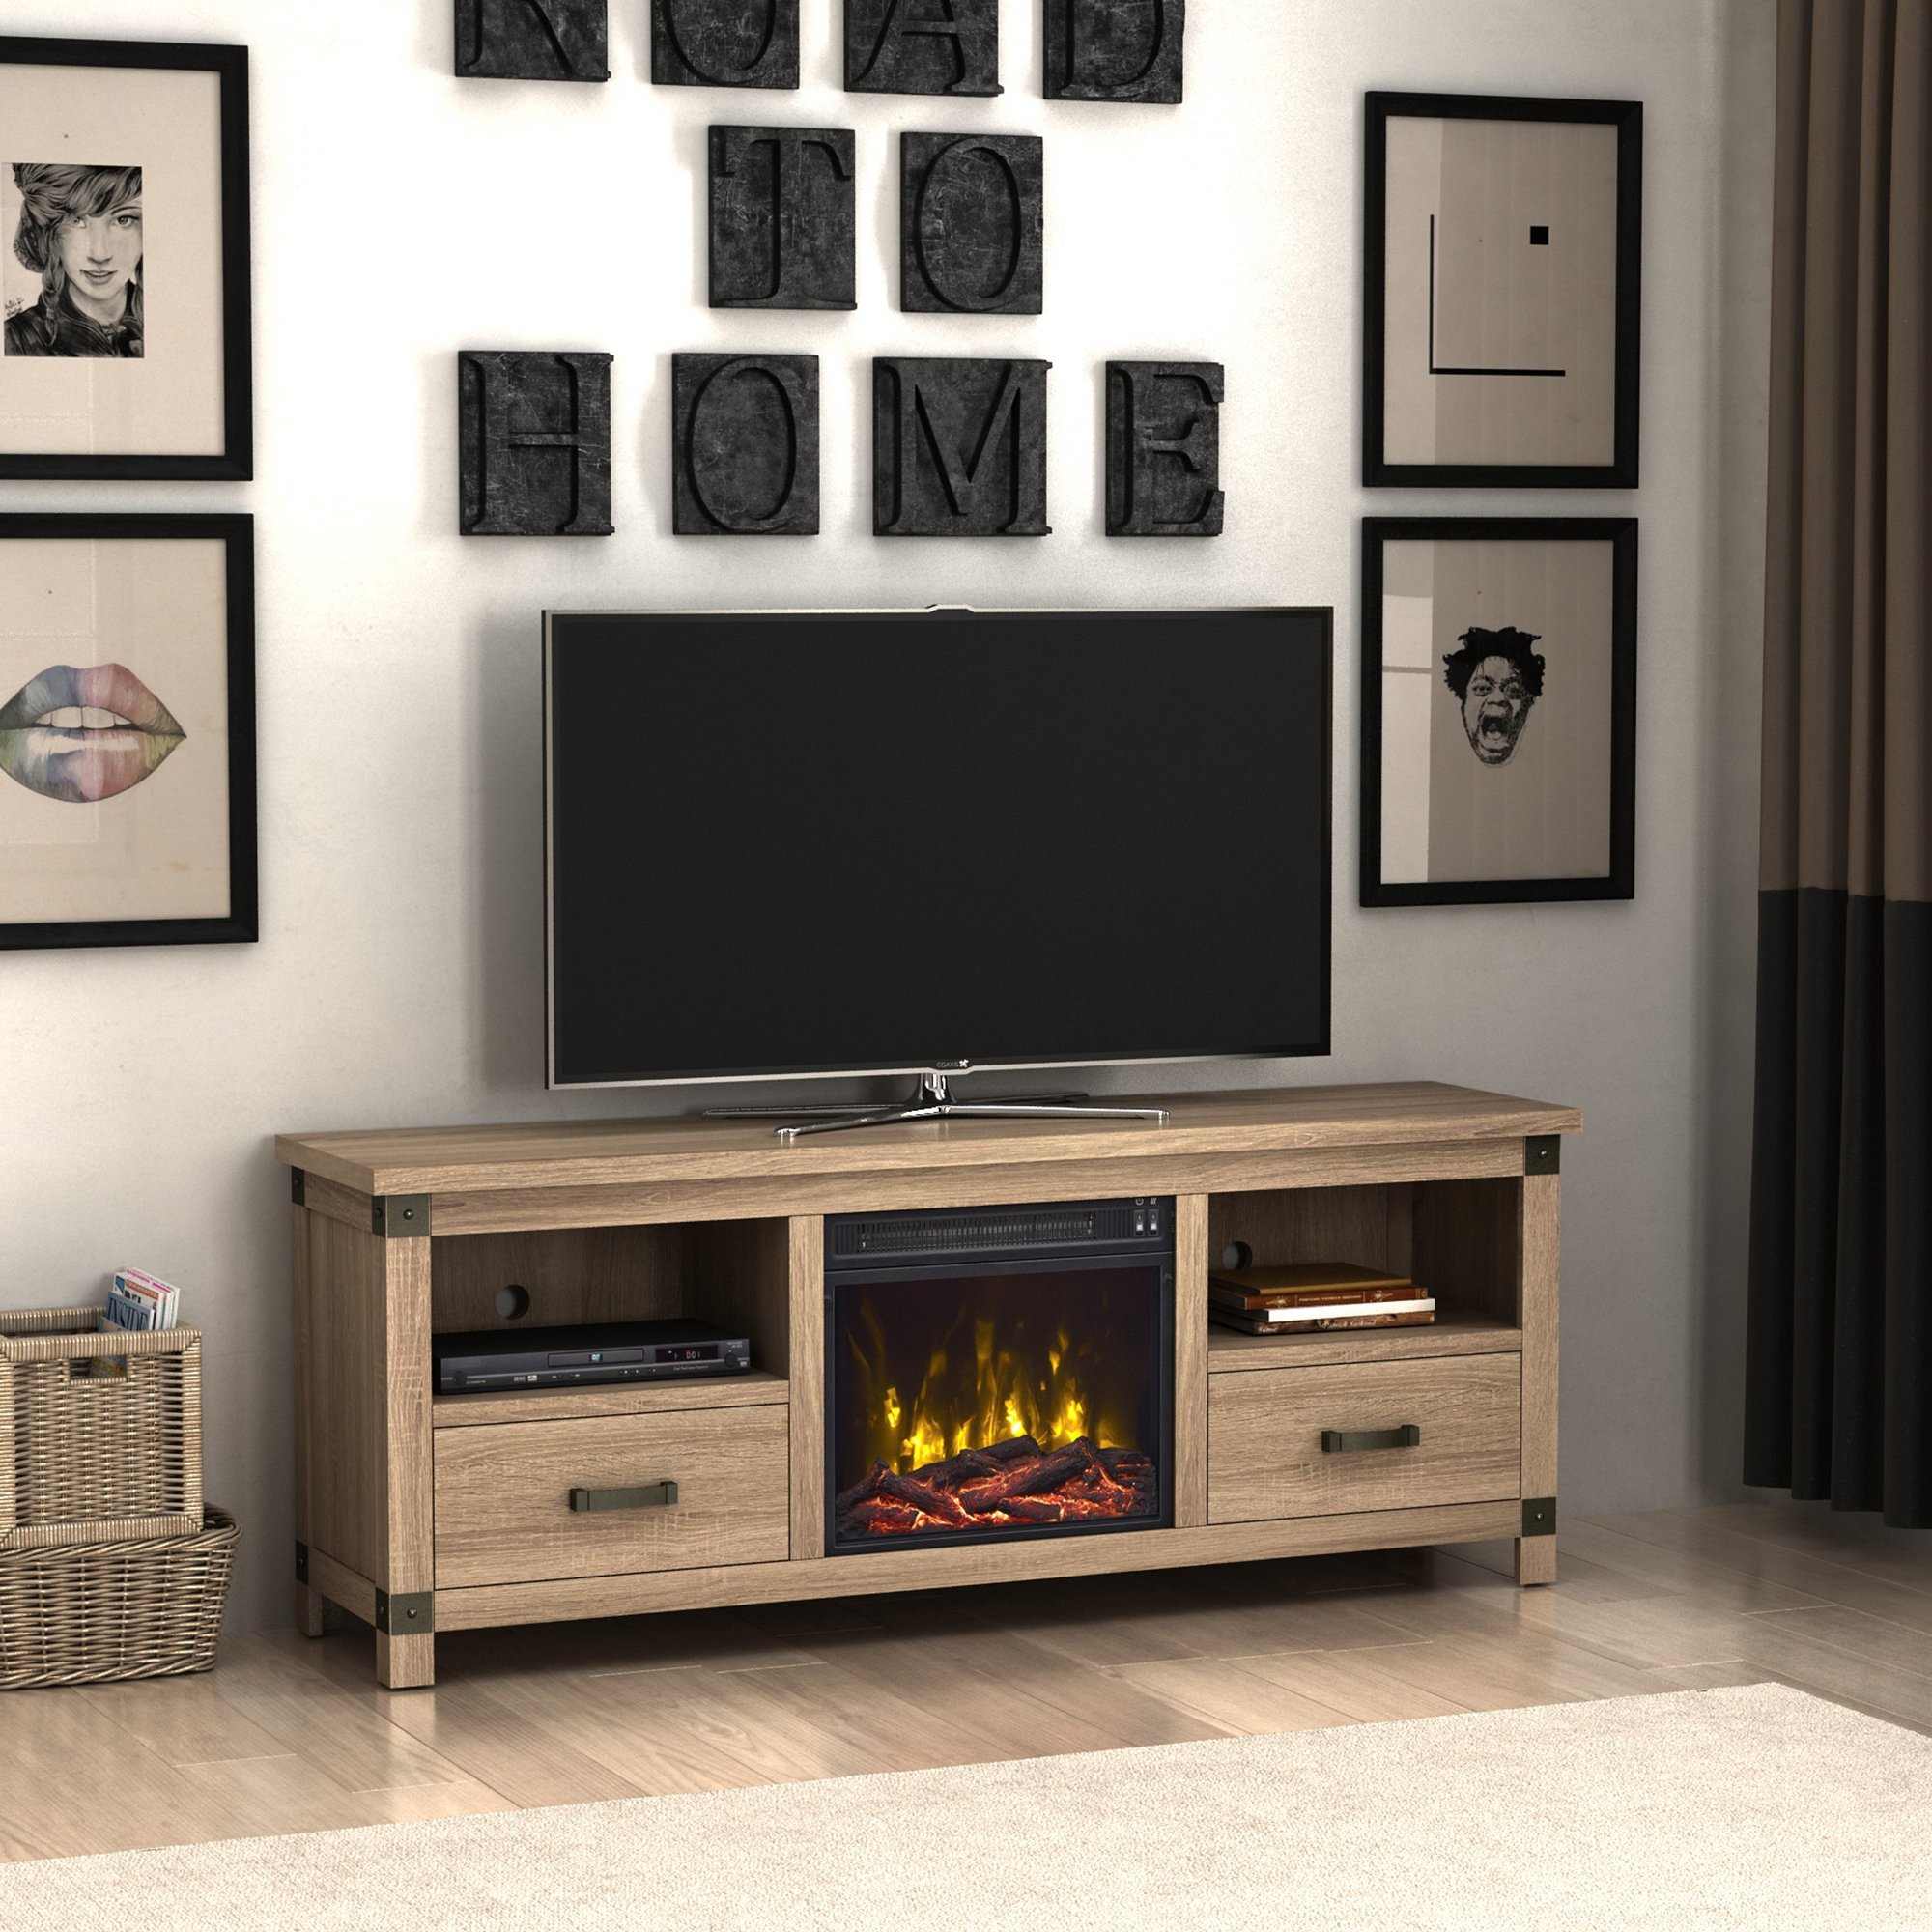 "Croxley Minden Oak TV Stand for TVs up to 70"" with Electric Fireplace and Drawers"